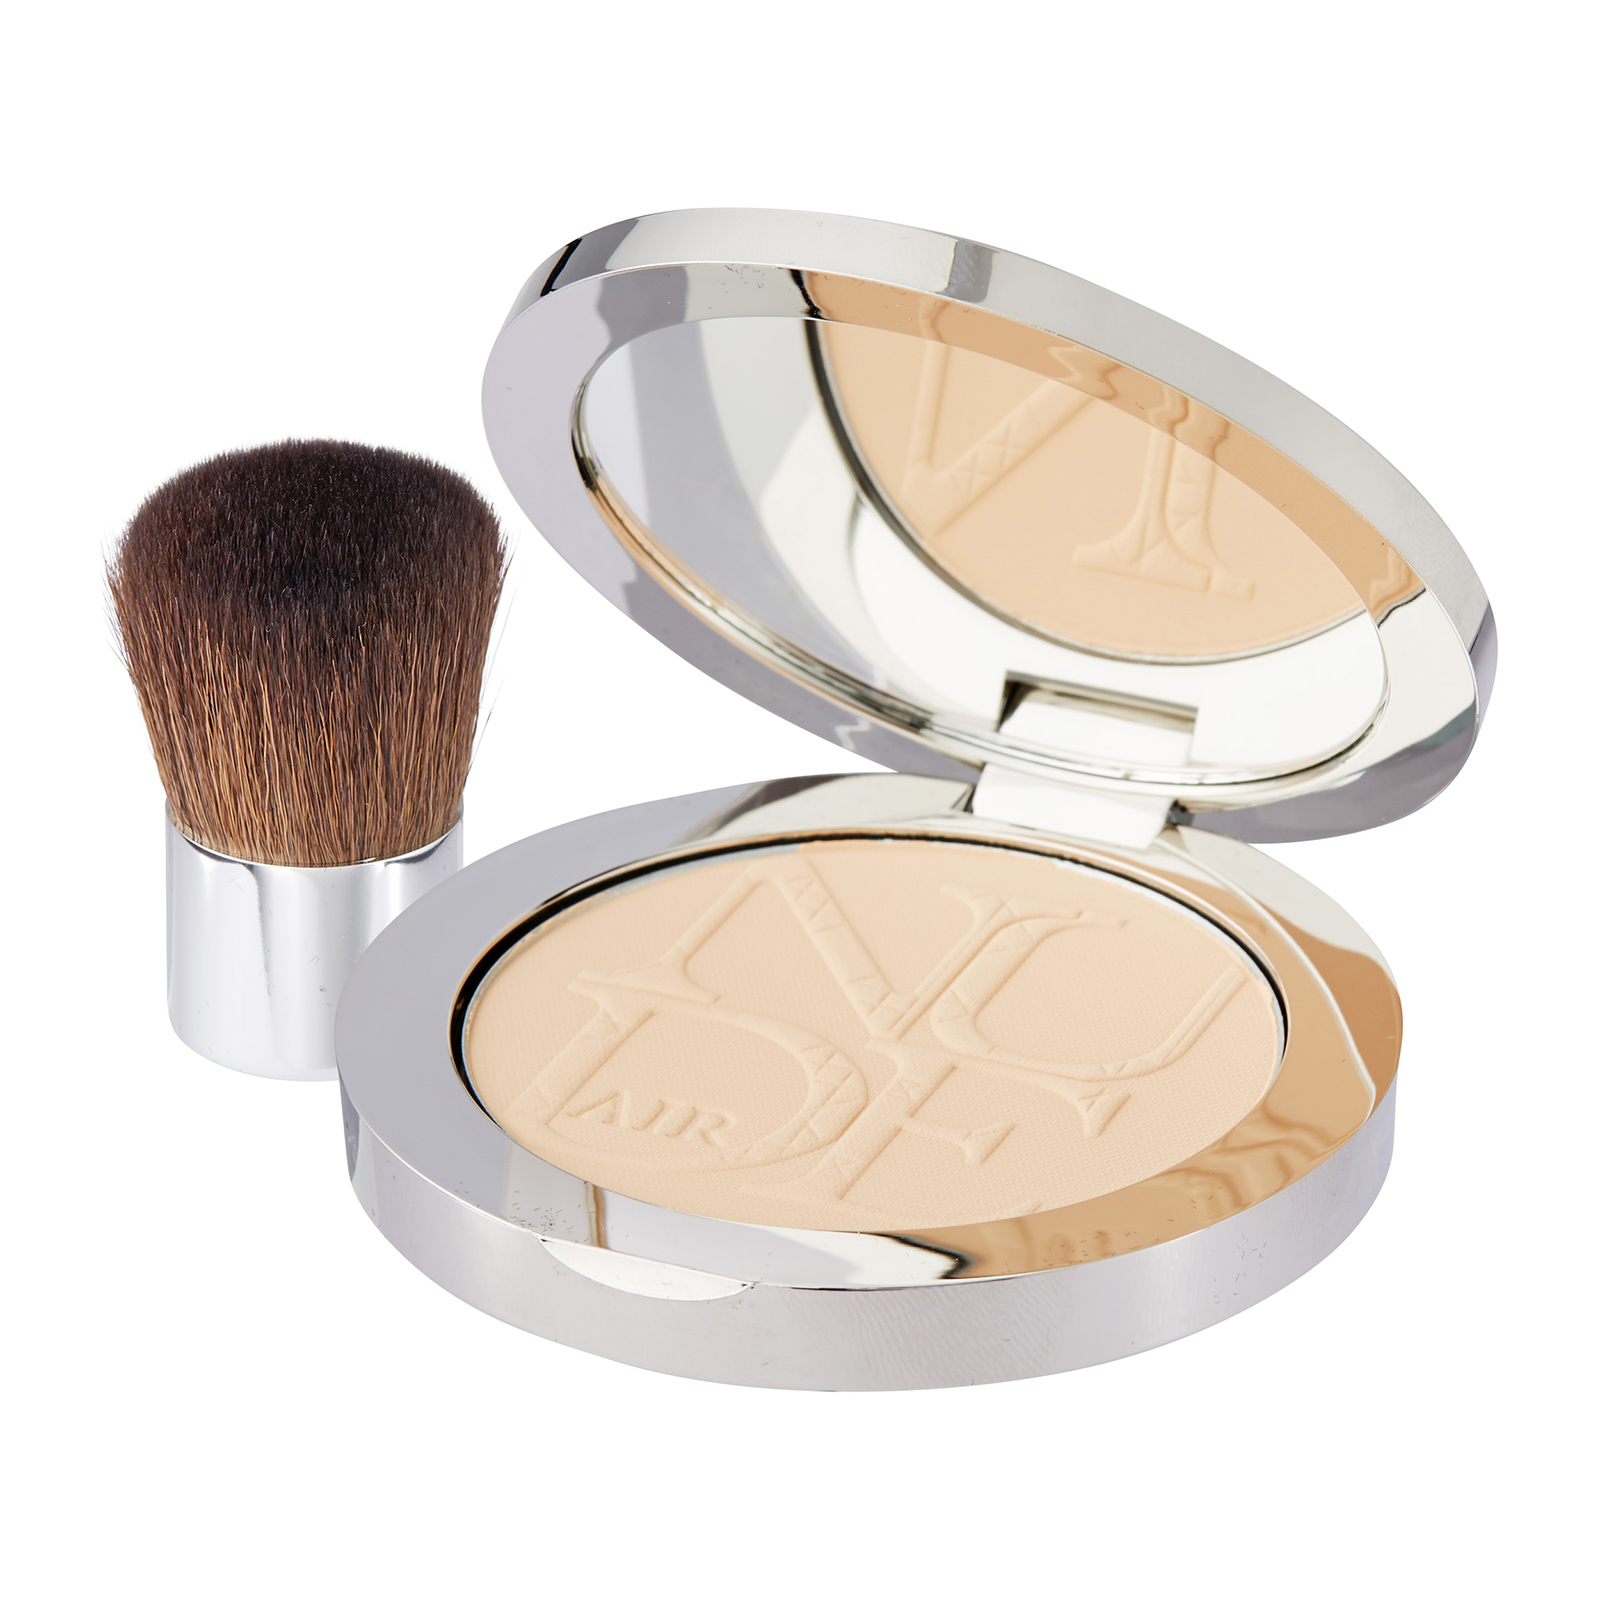 Christian Dior DiorSkin Nude Air Healthy Glow Invisible Powder With Kabuki Brush 020 Light Beige, 0.35oz, 10g